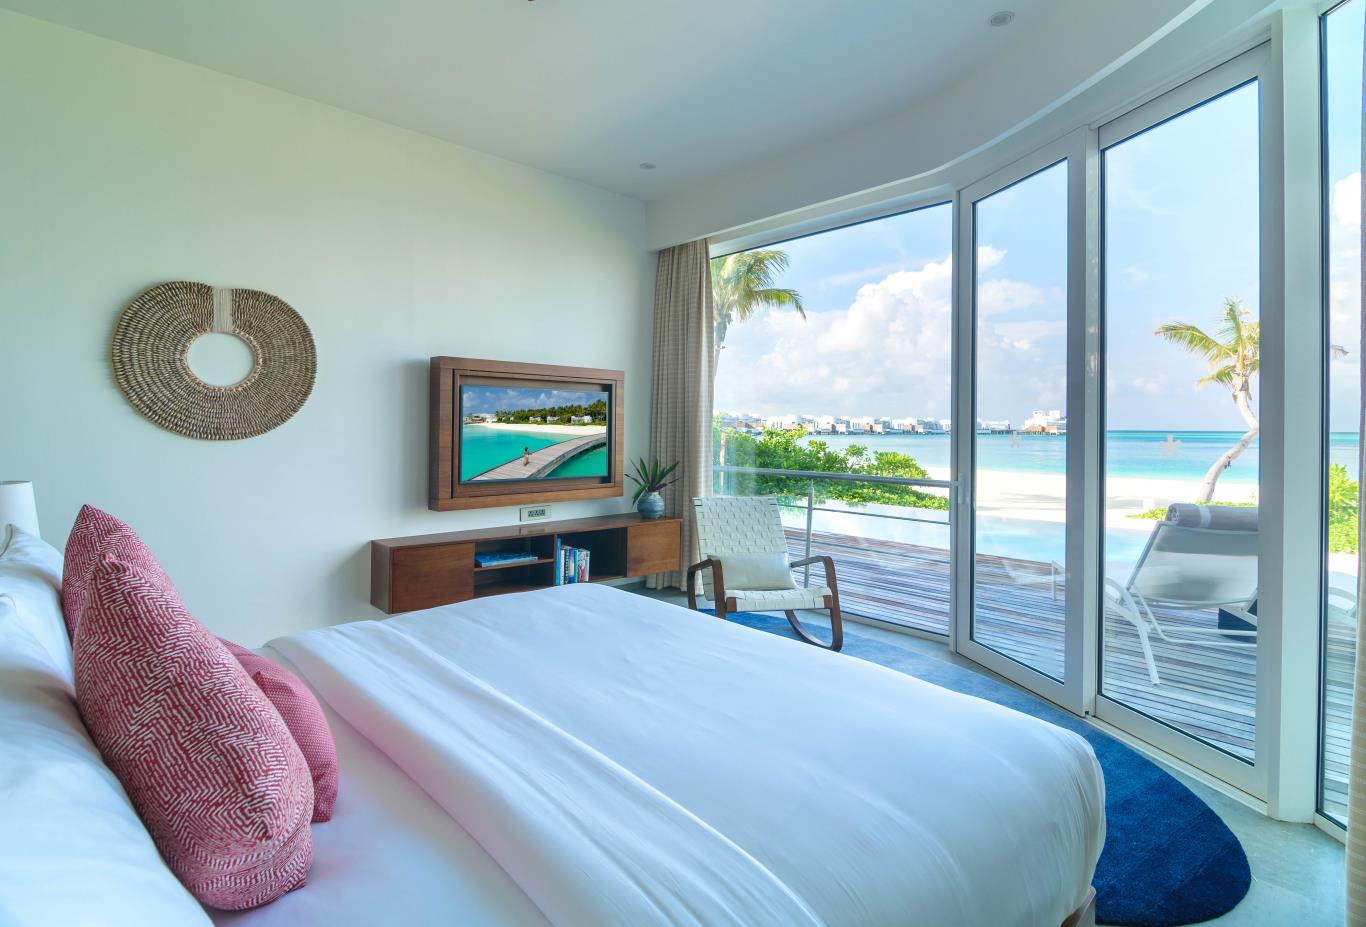 Beach Villa bedroom and windows